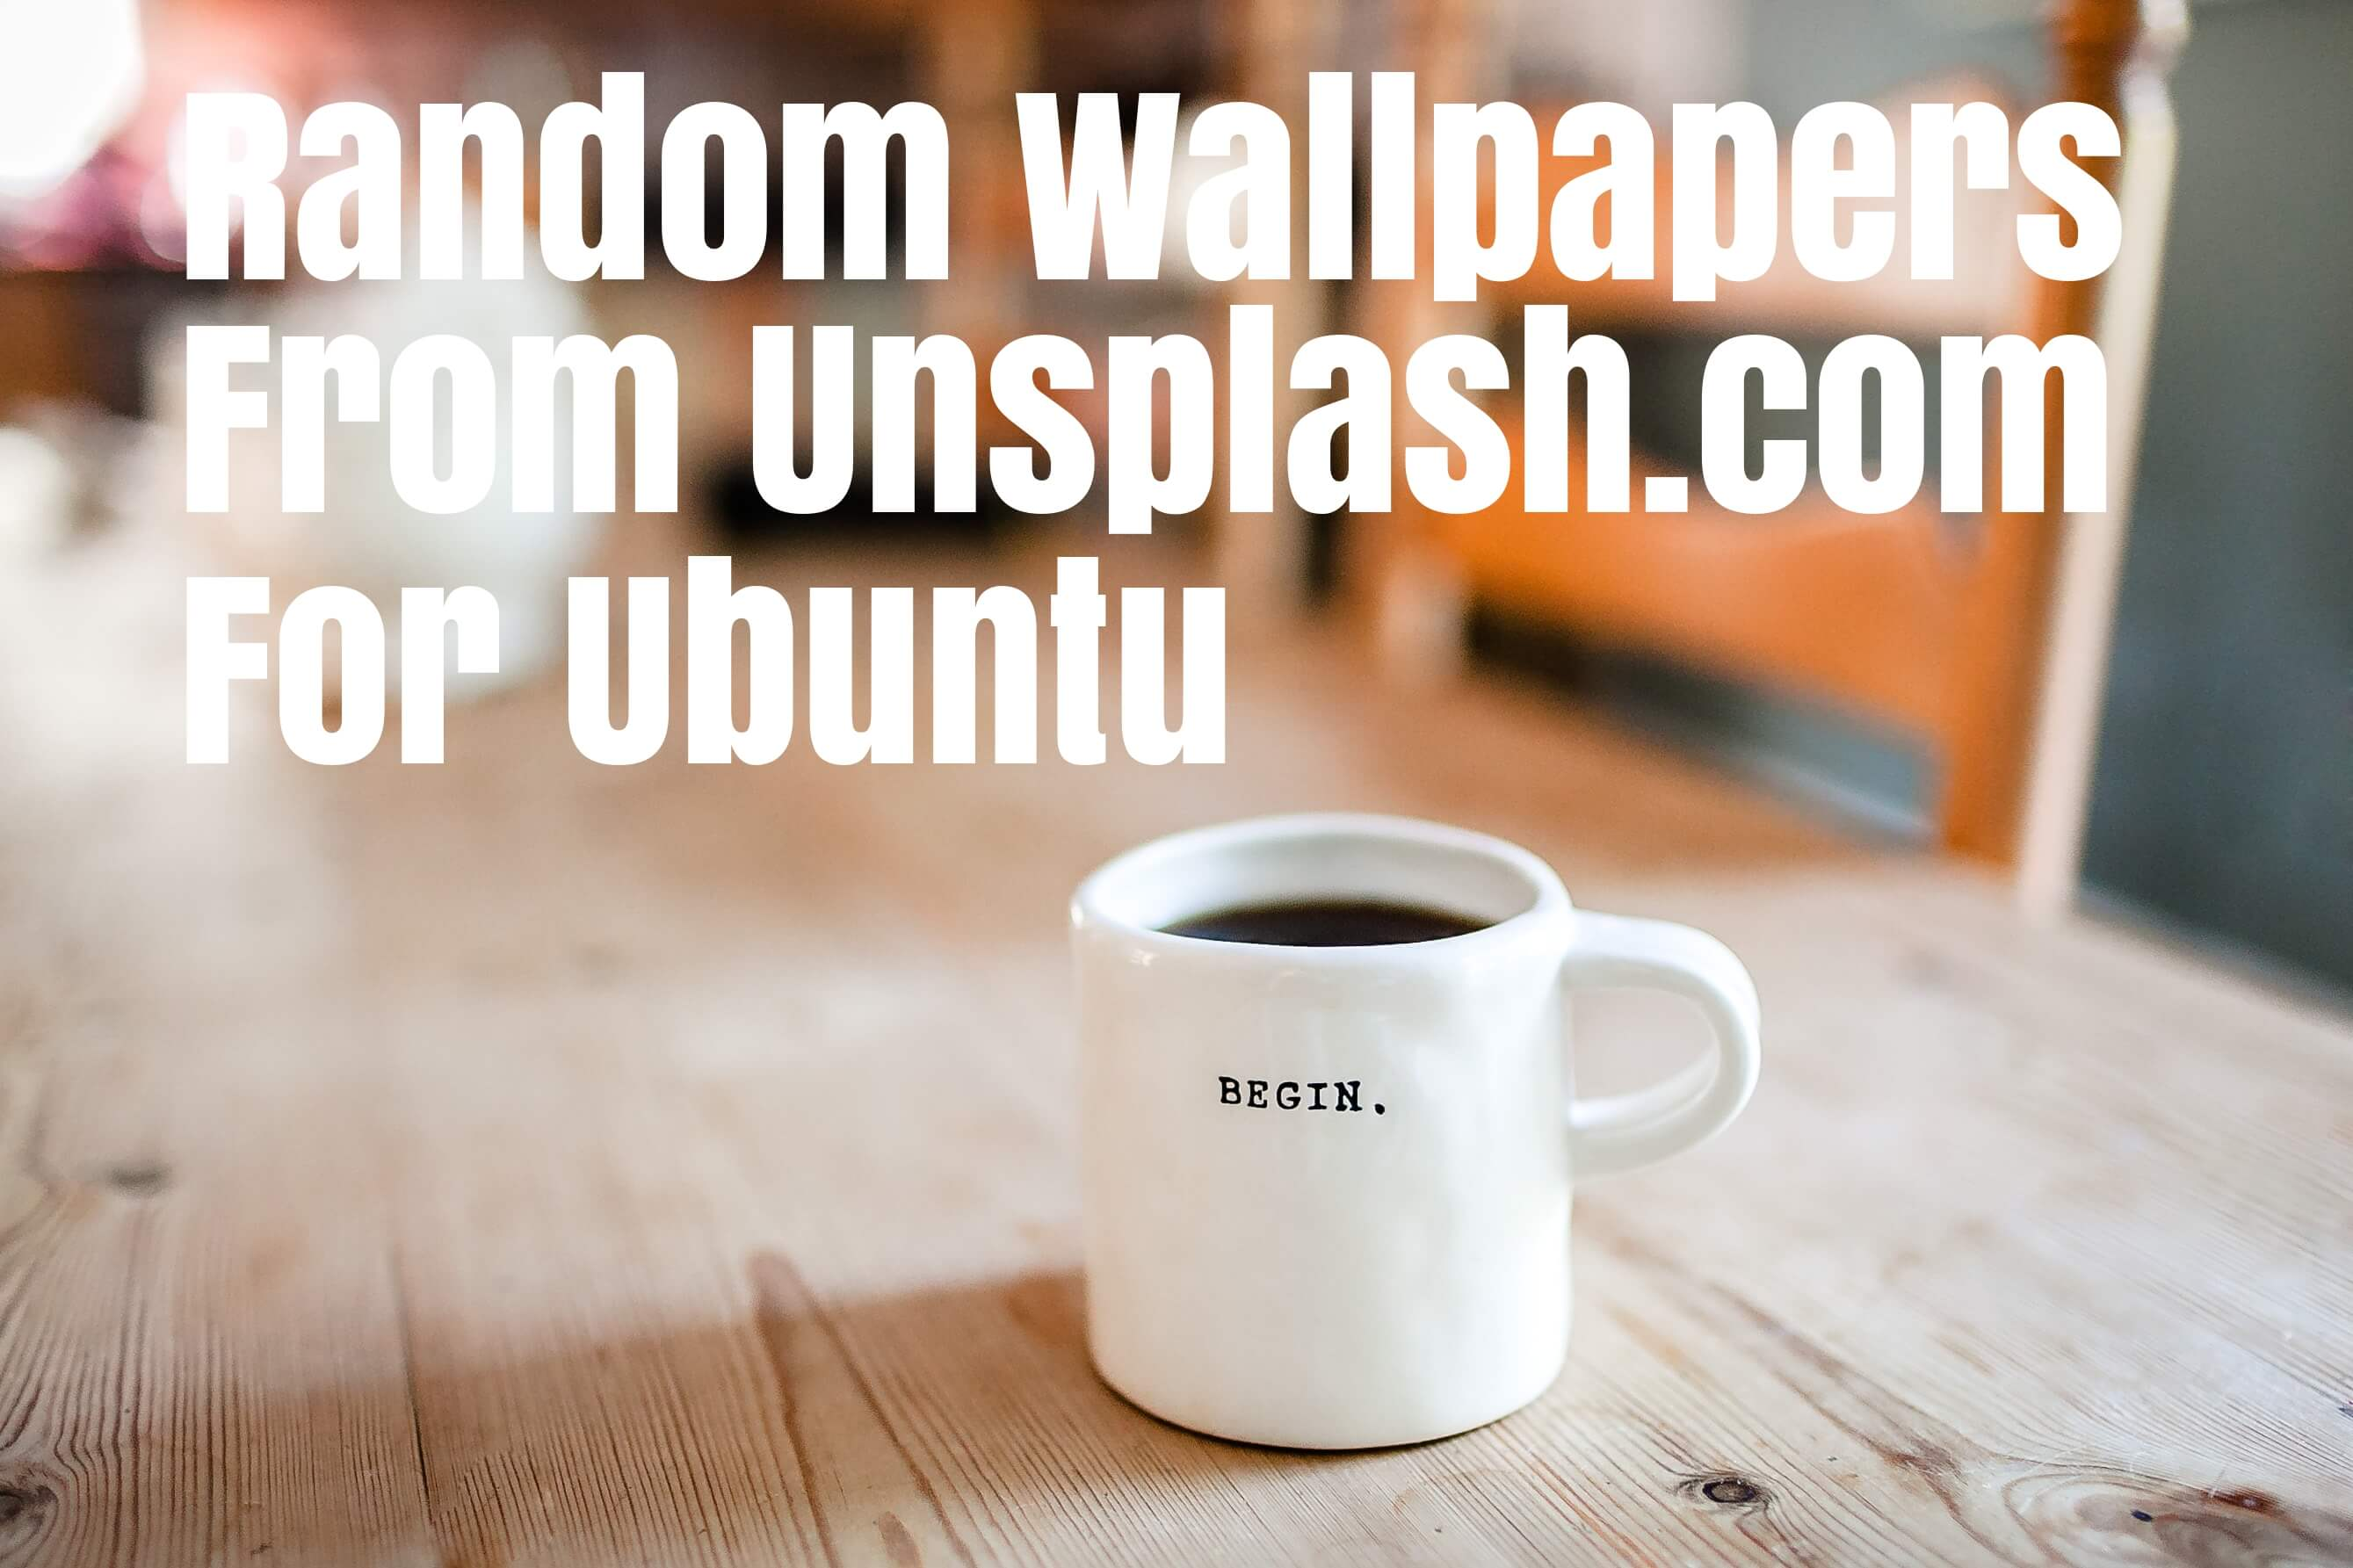 How To Set Random Wallpapers From Unsplash com For Ubuntu